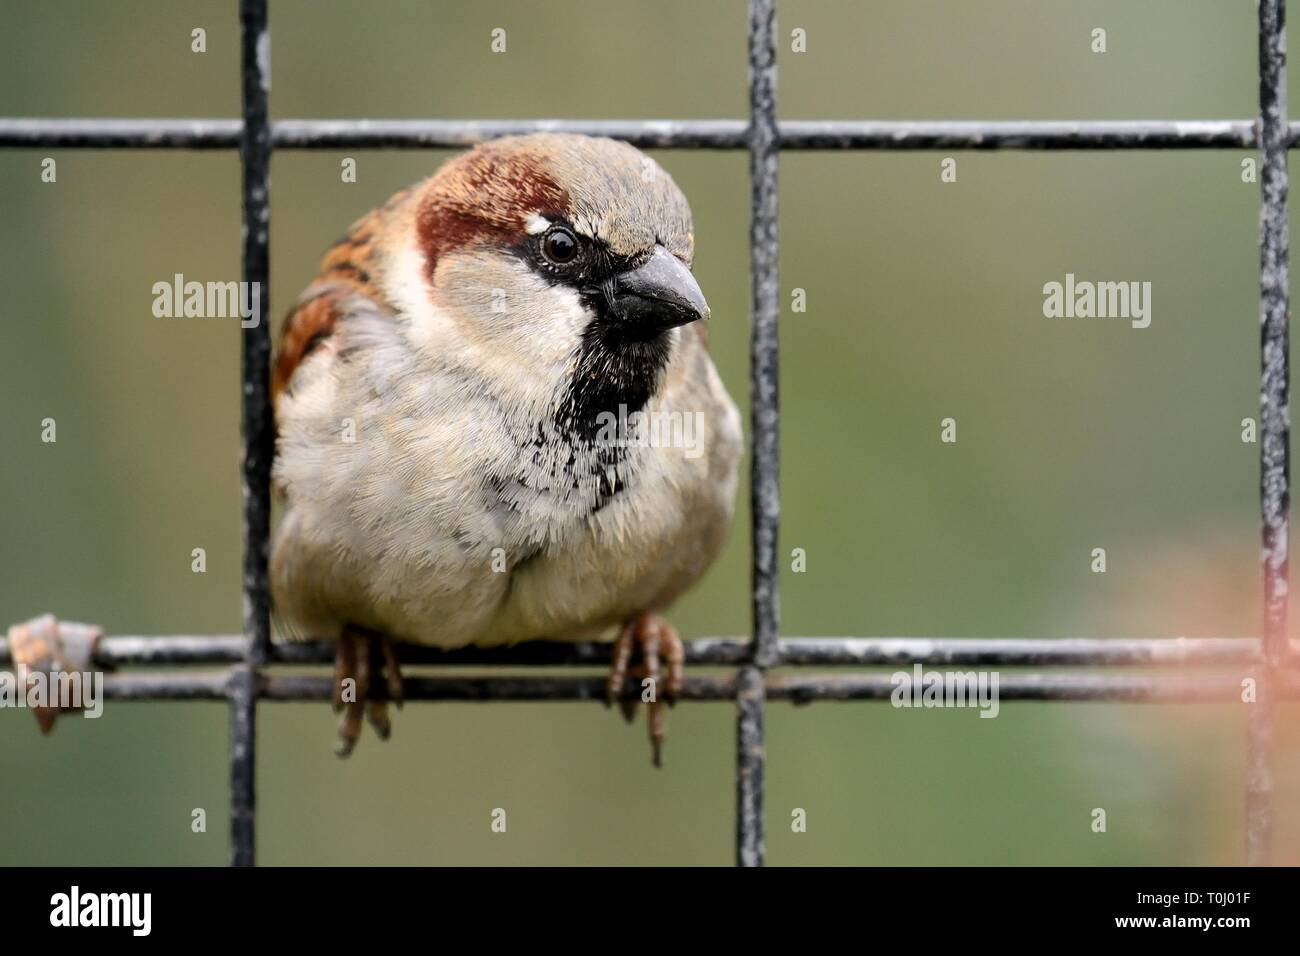 Portrait of a sparrow perching on a wire fence - Stock Image